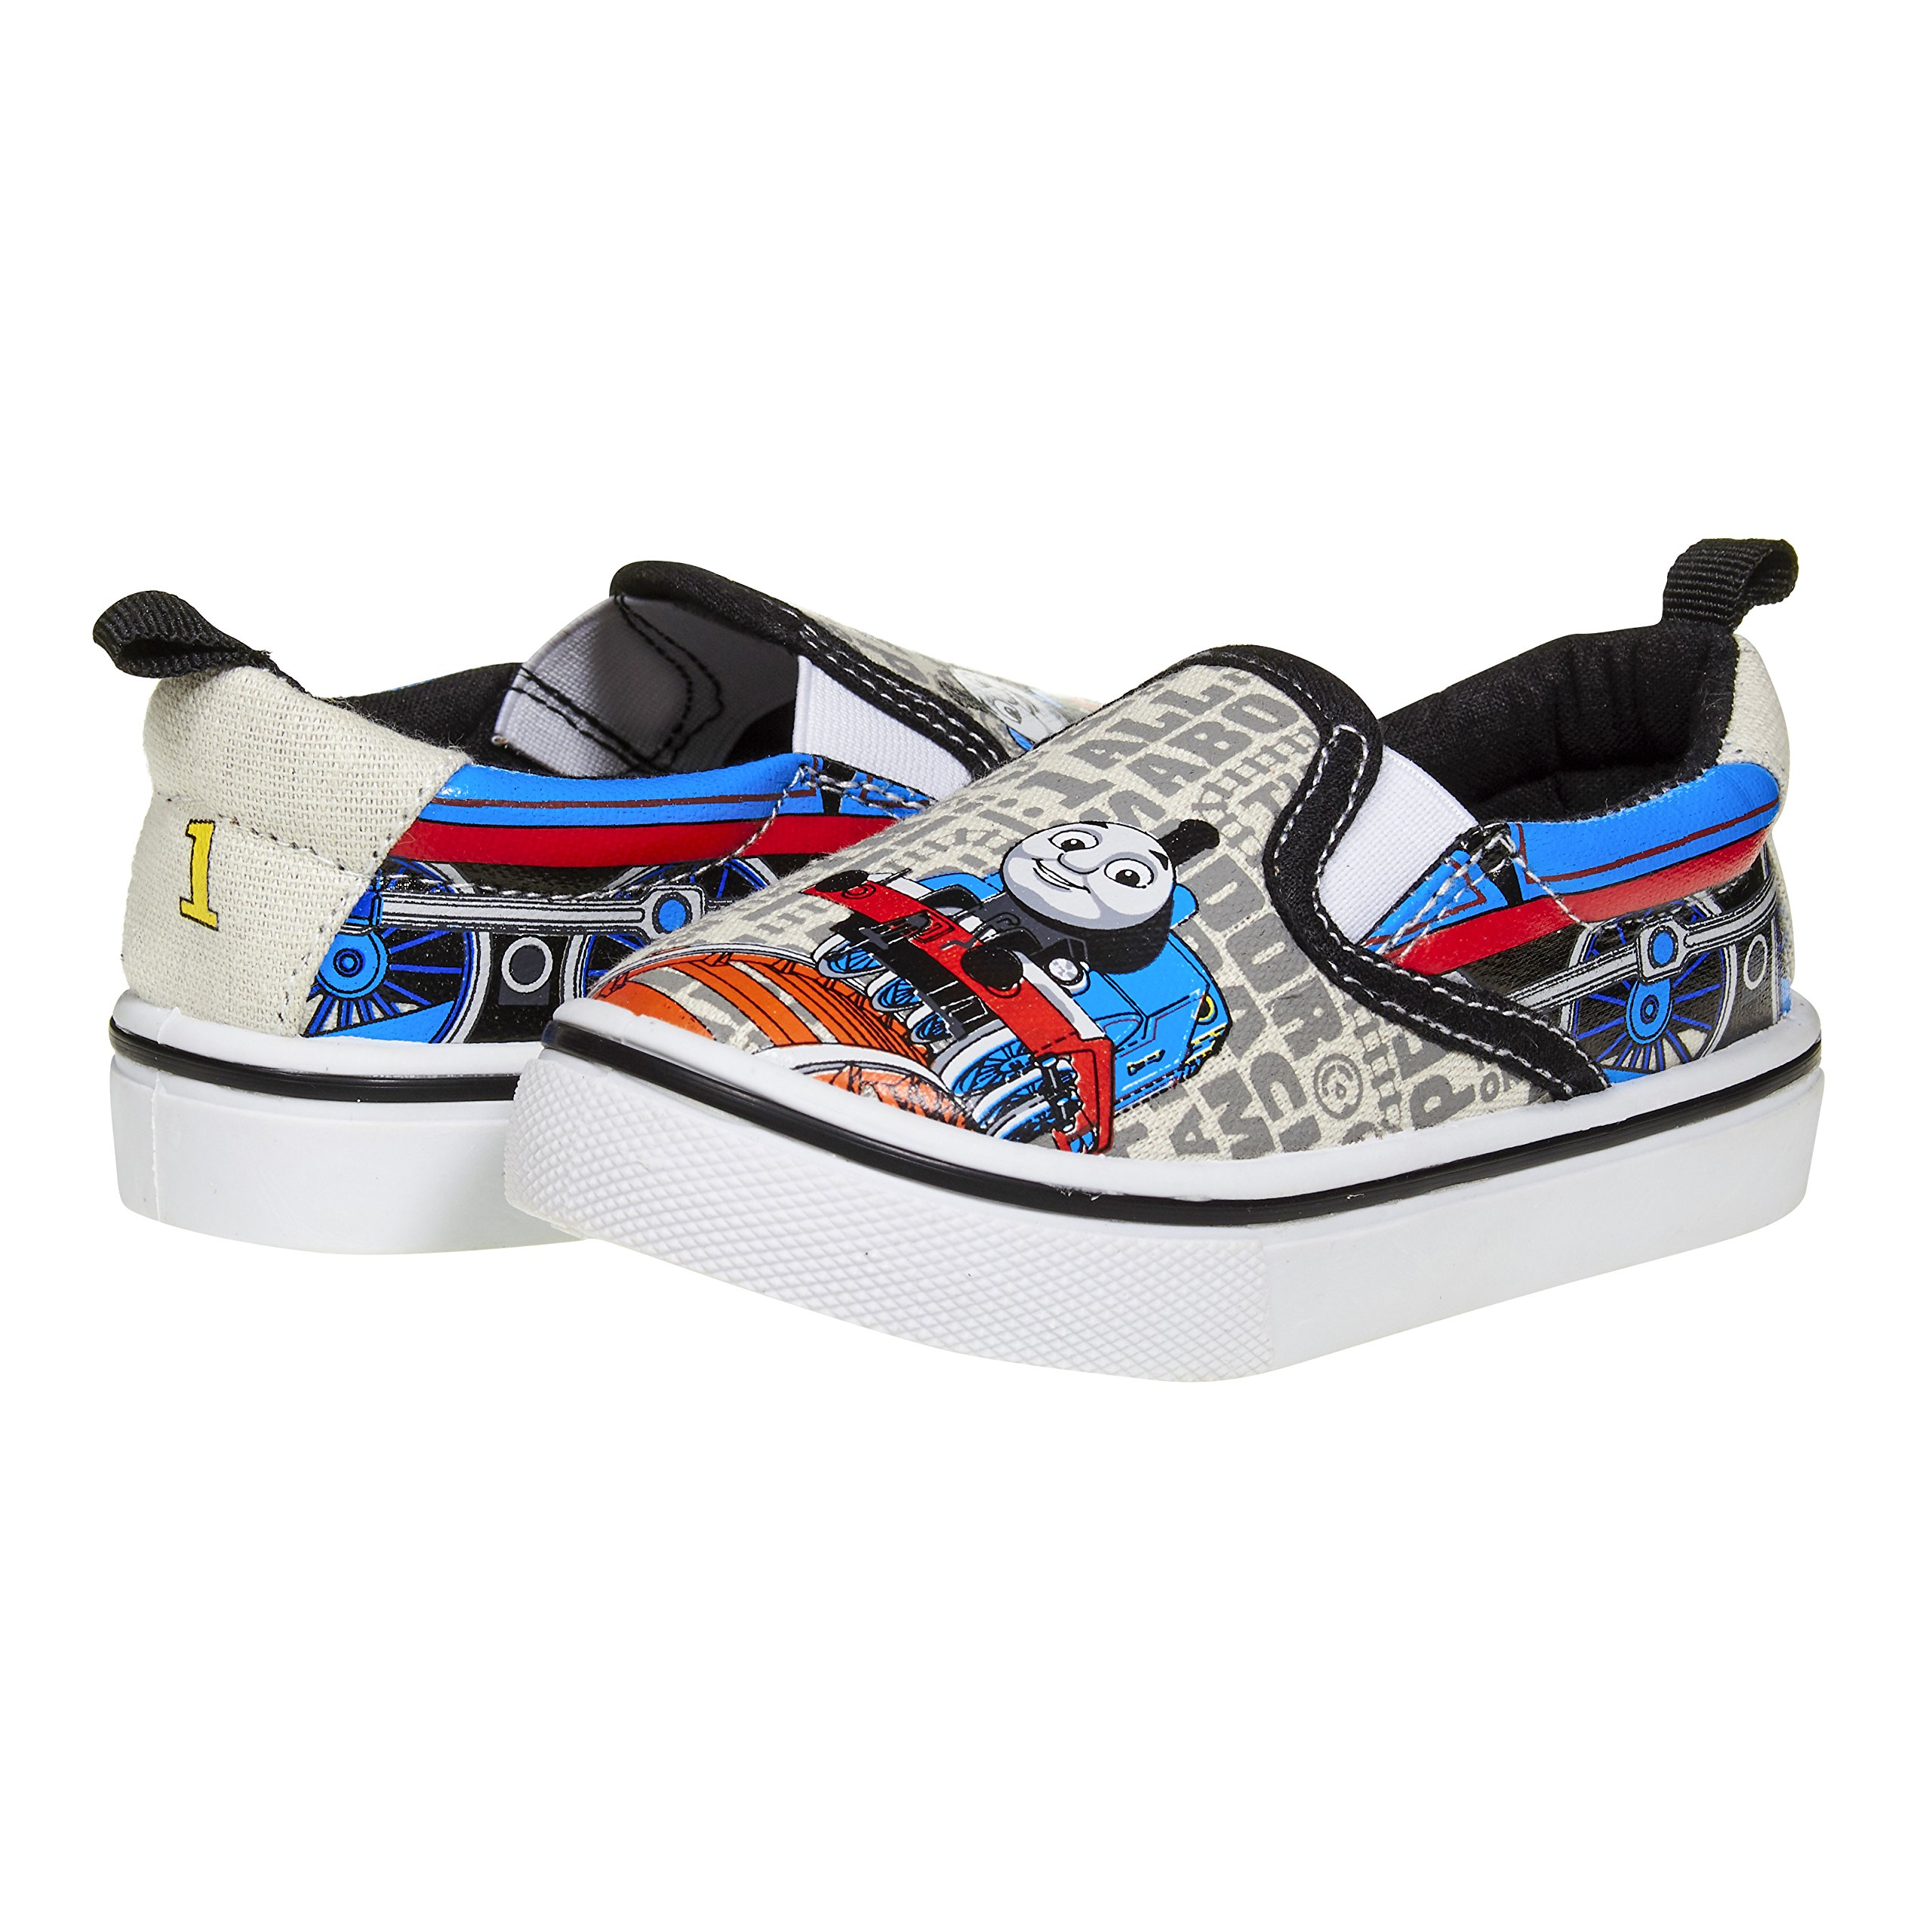 Thomas and Friends Toddler Boy Shoes; Slip-On Little Kids Character Shoes